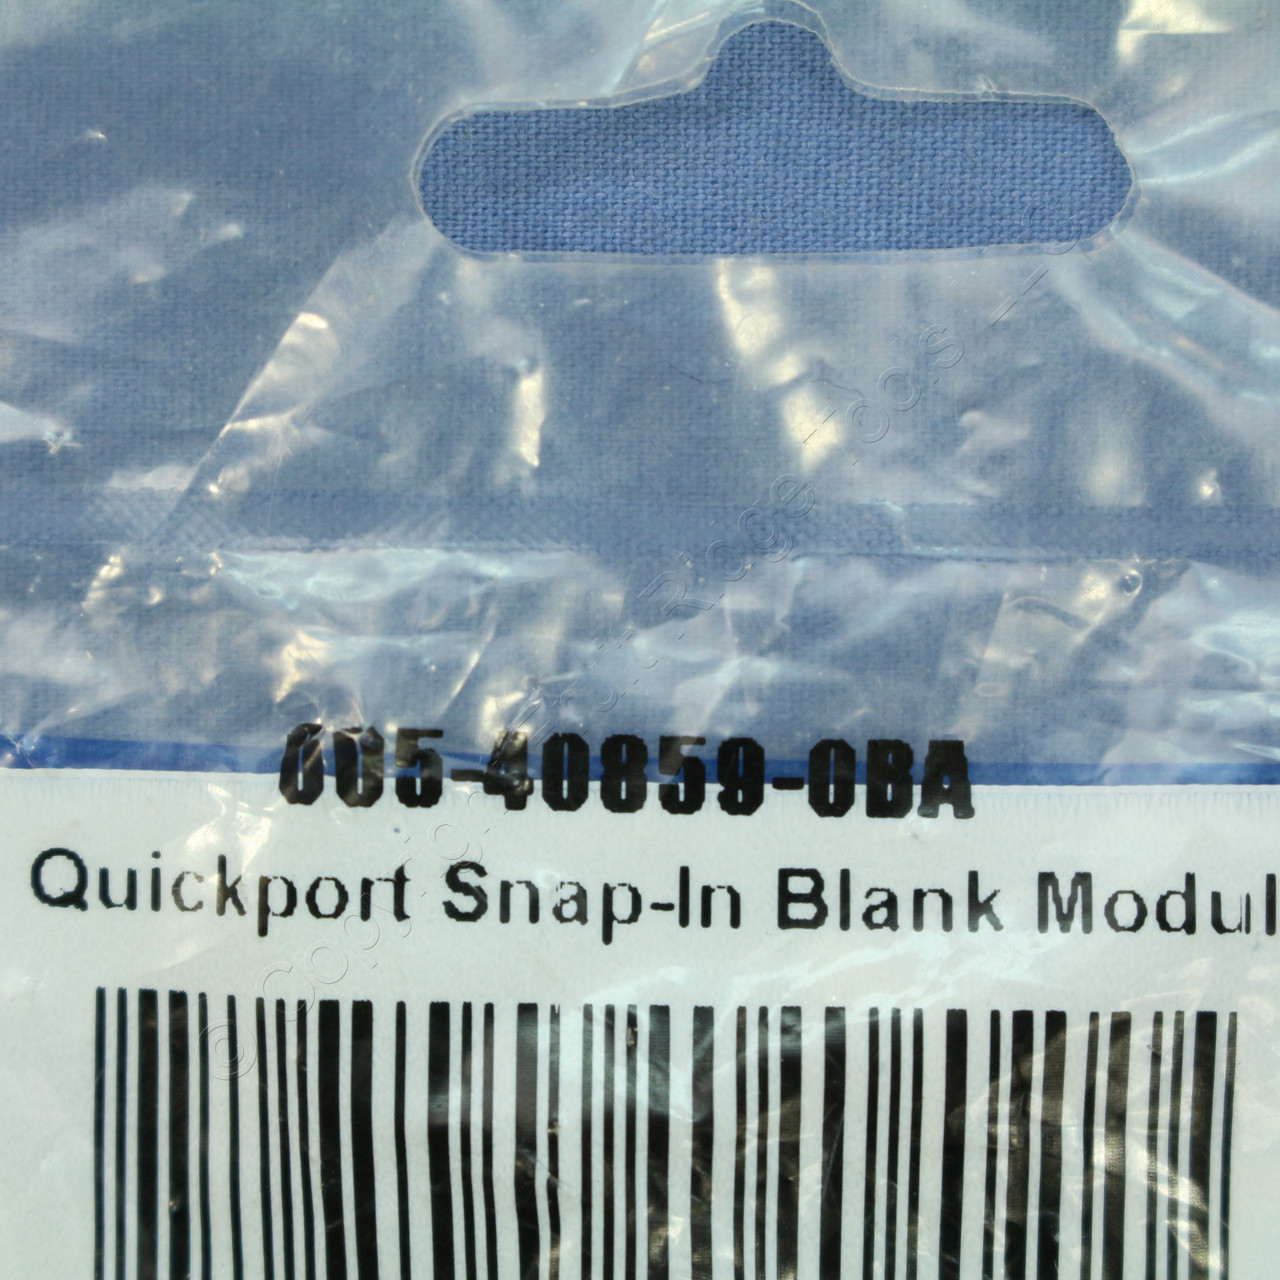 4 New Leviton Almond Quickport Snap-In 1-Port Blank Filler Cover Inserts 40859-A